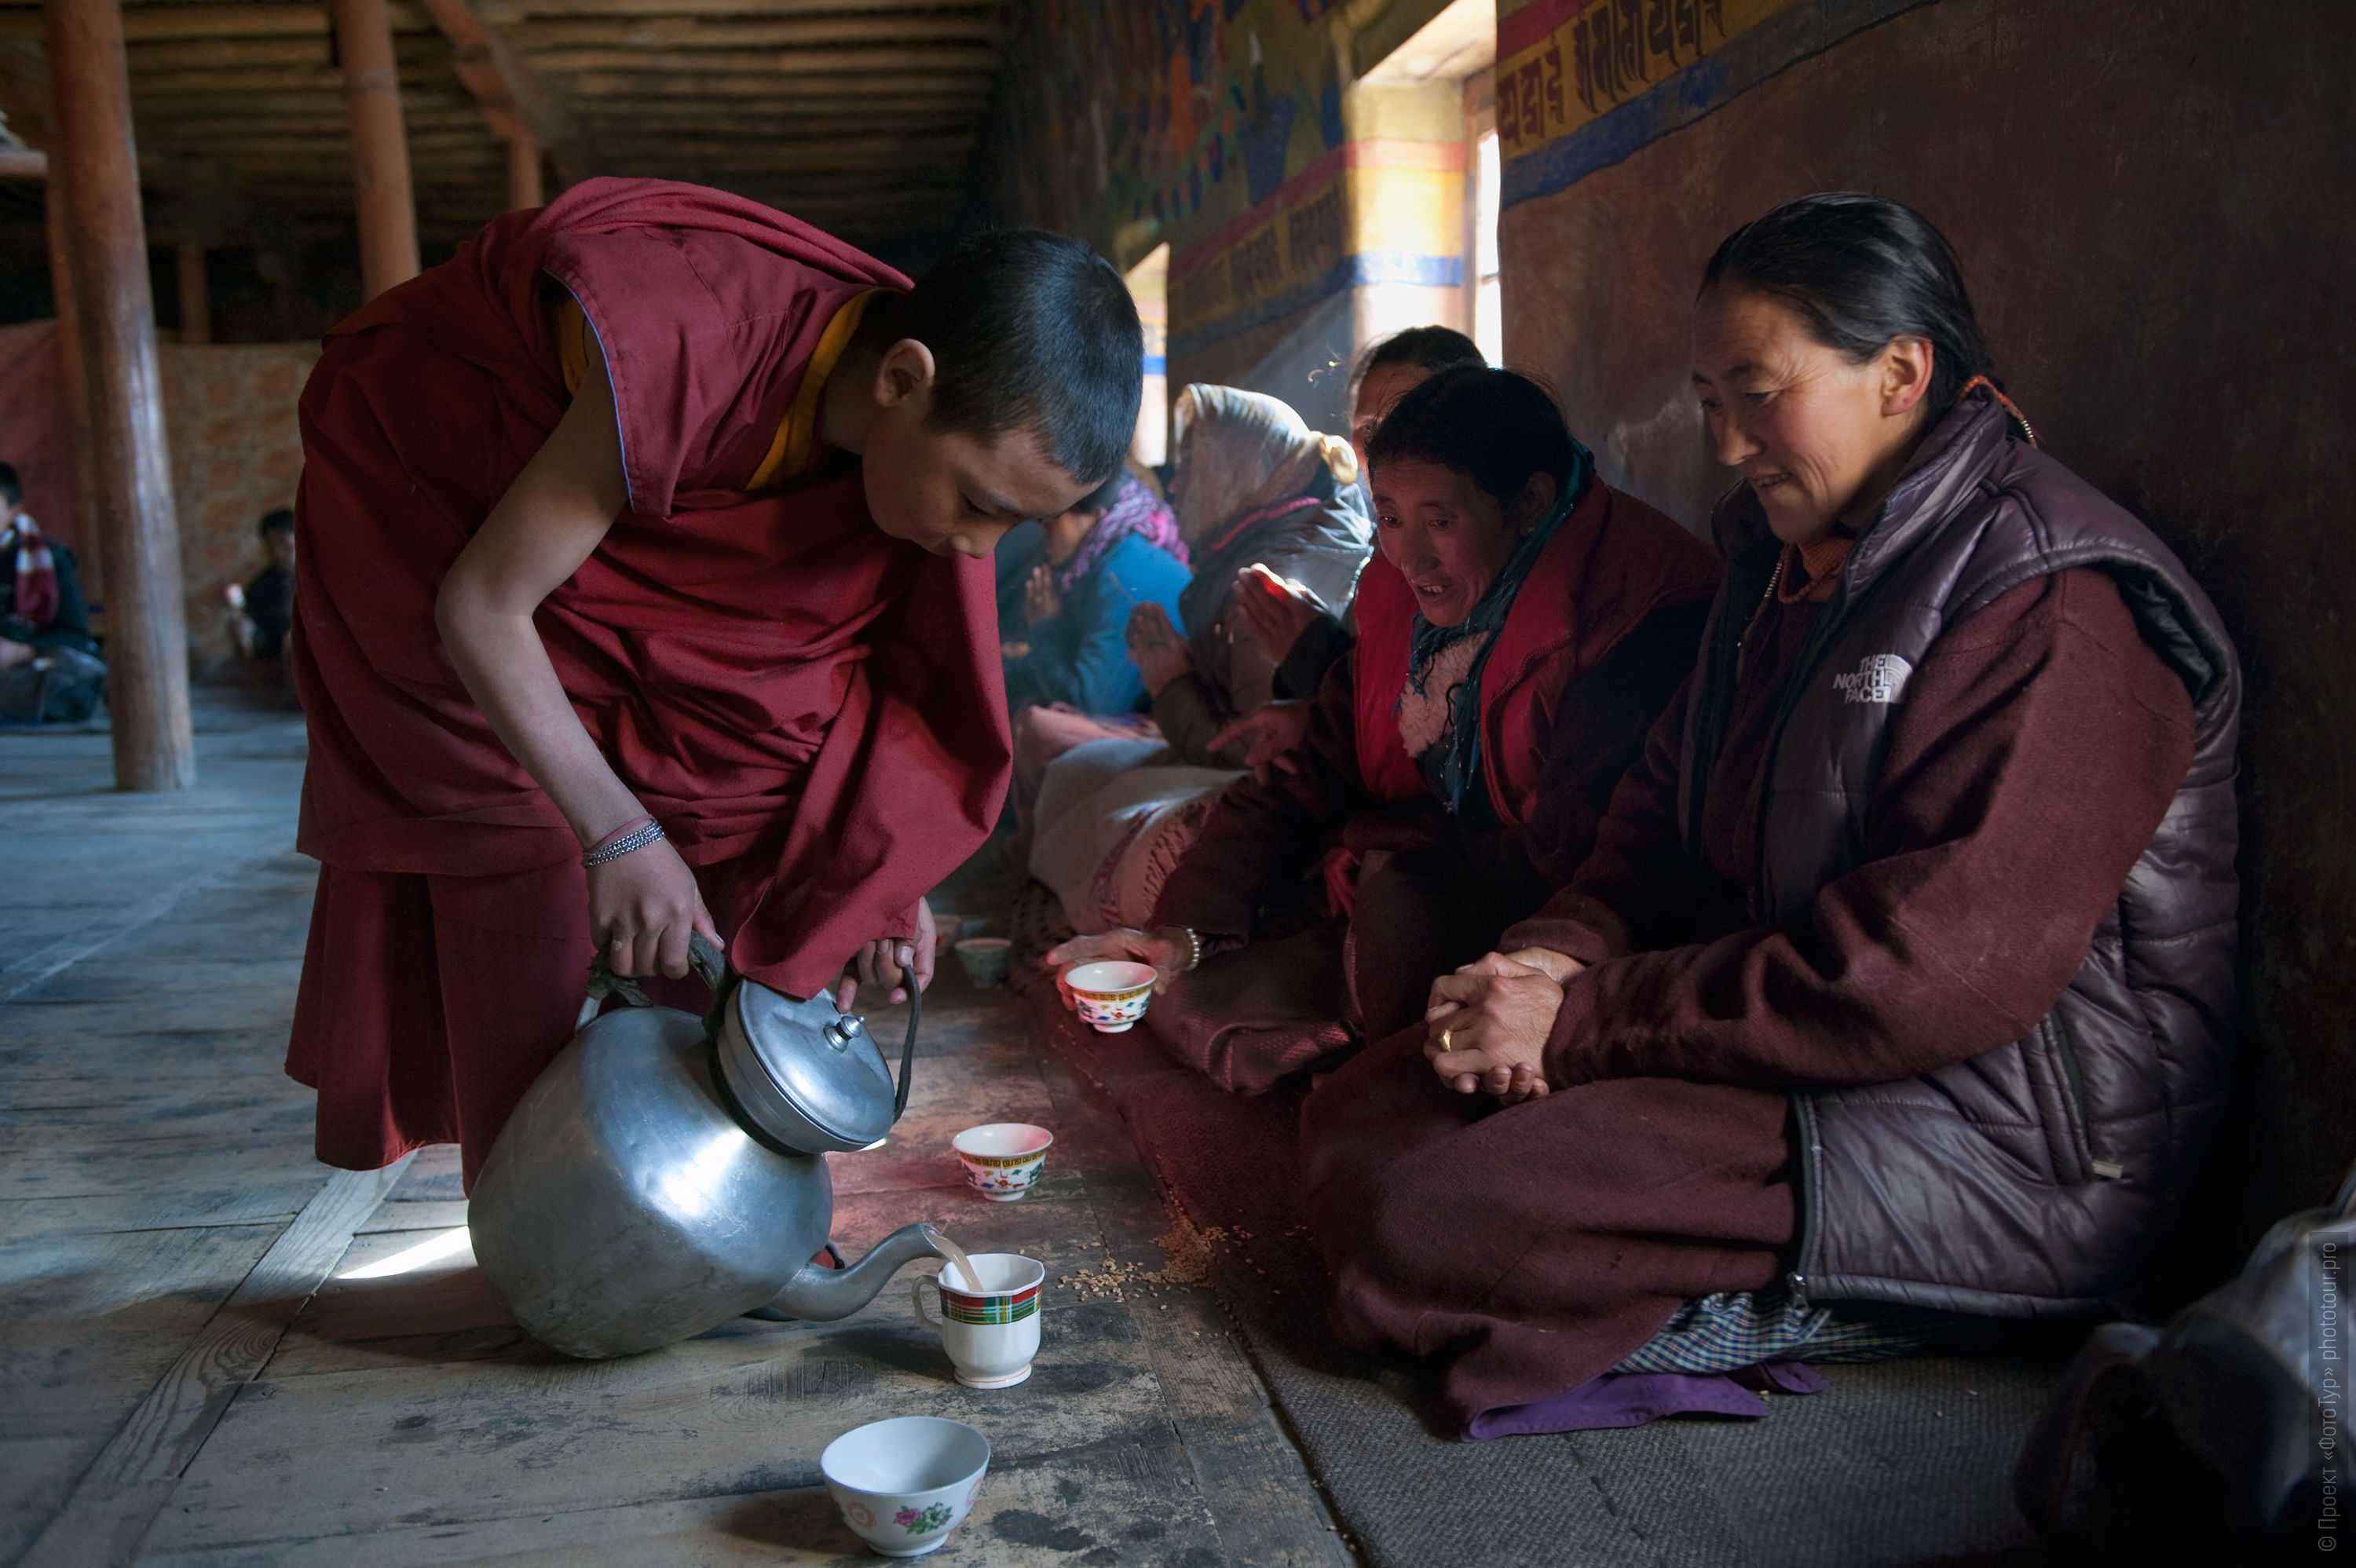 Tea drinking in Tiksi Gonpa. Photo tour to Tibet for the Winter Mysteries in Ladakh, Stok and Matho monasteries, 01.03. - 03/10/2020